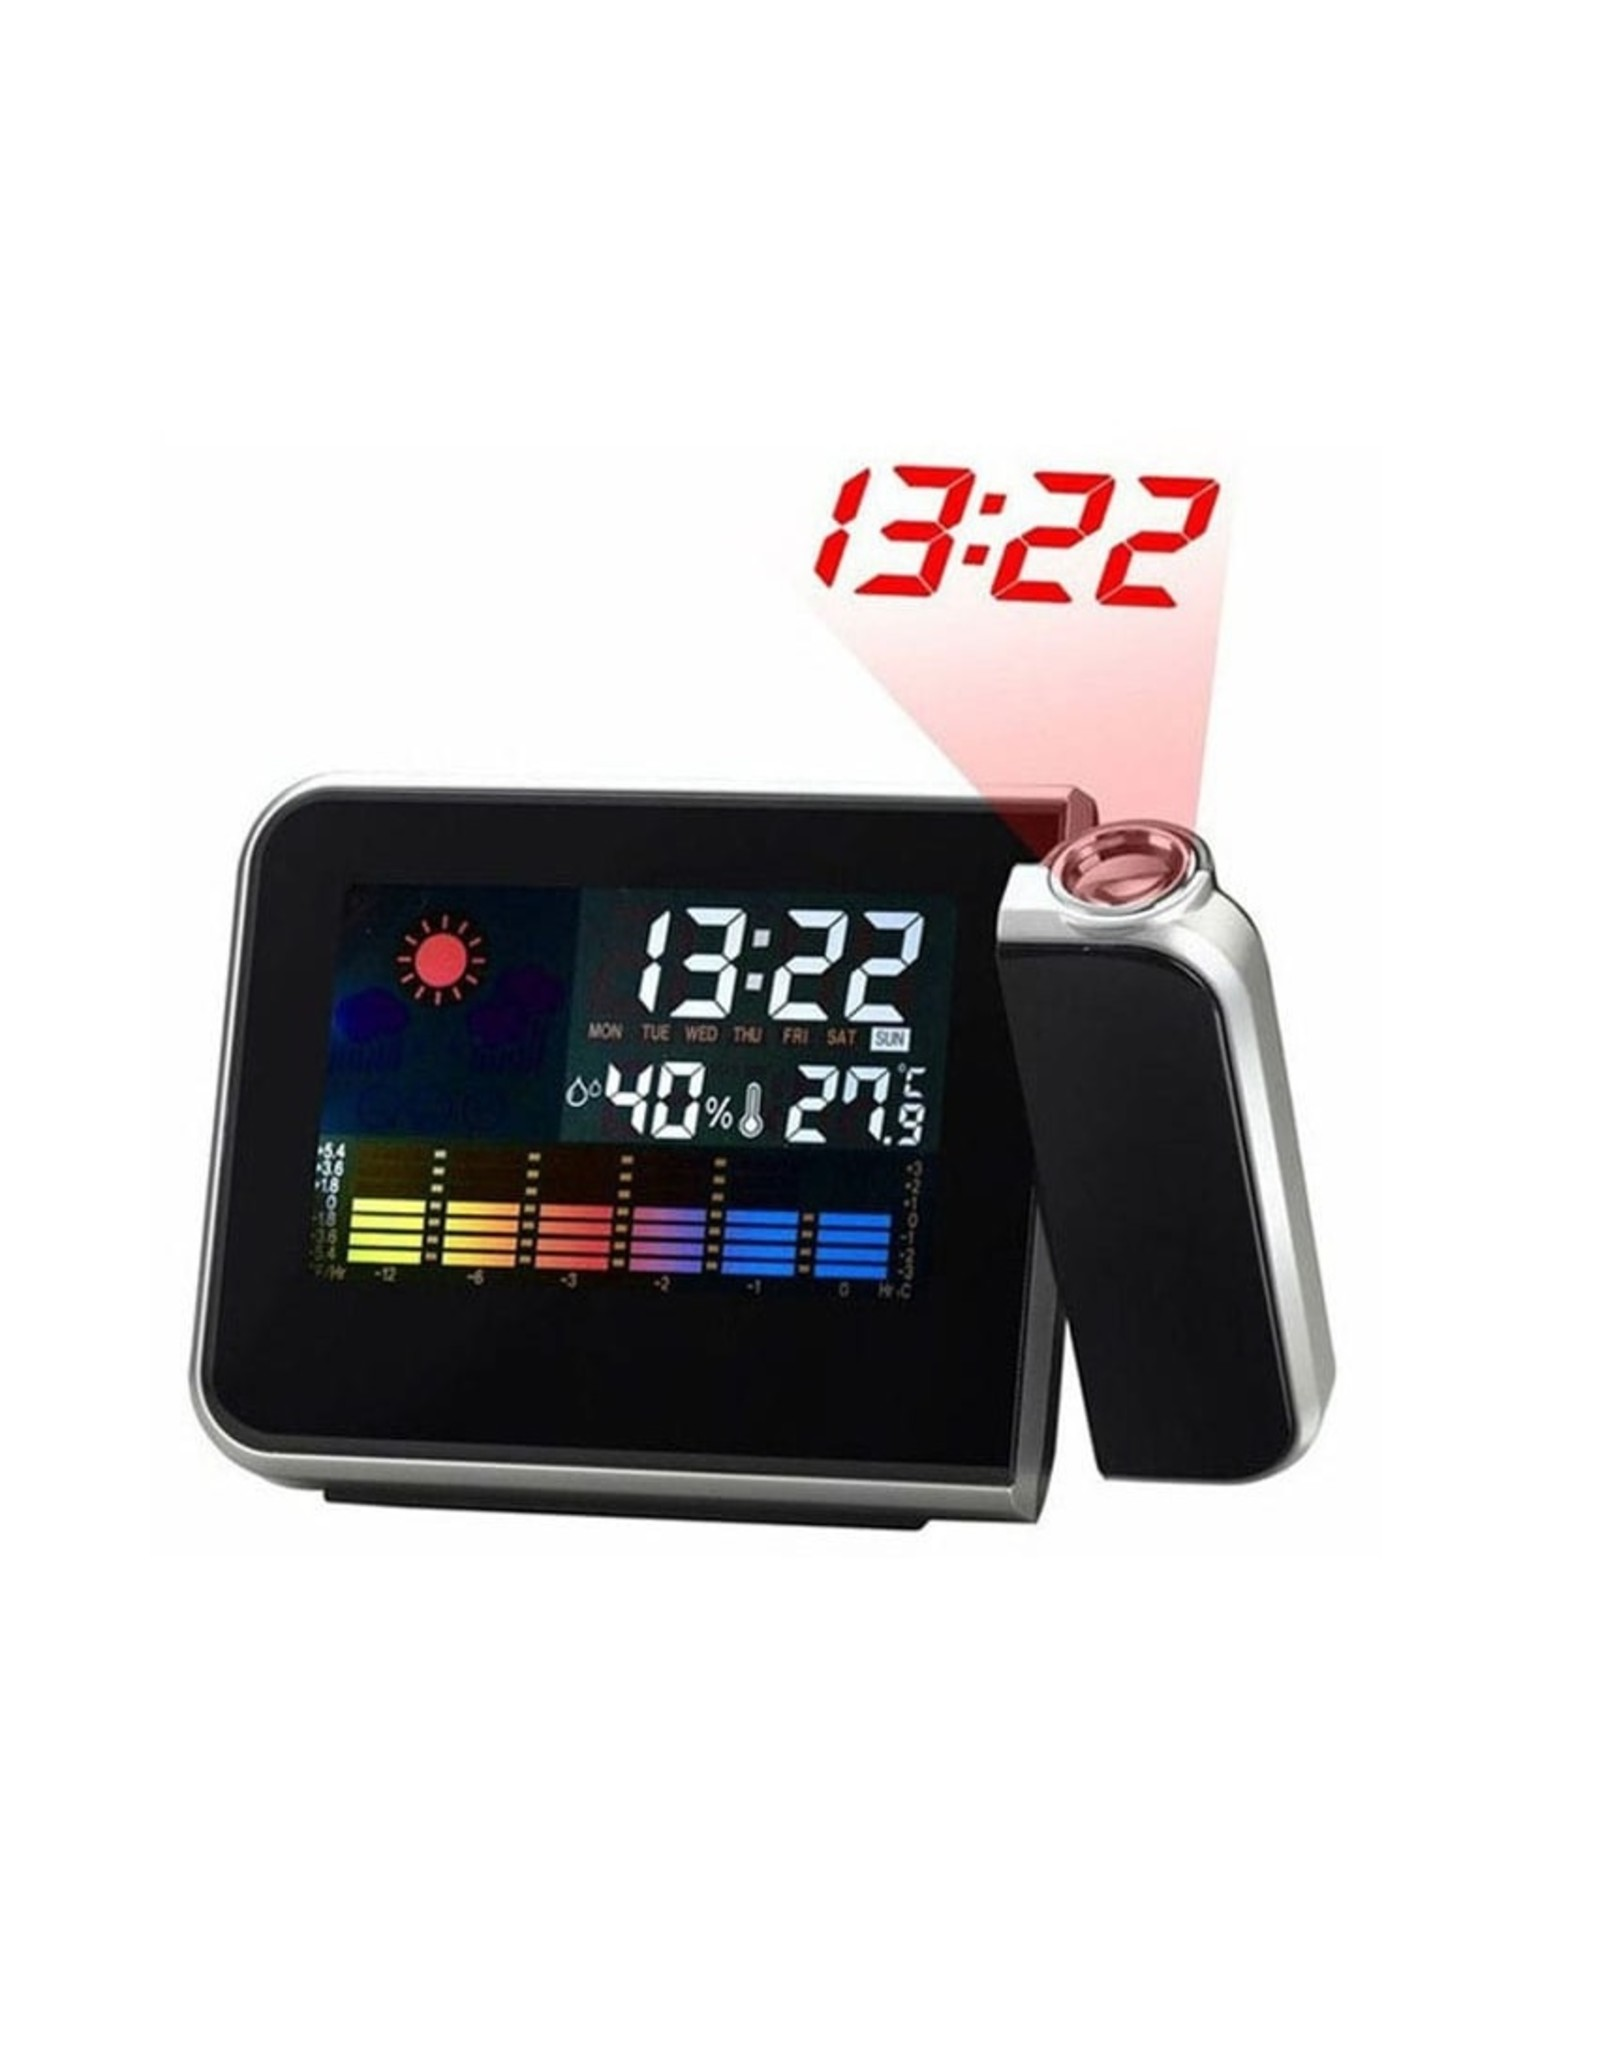 Parya Official Digital Clock - Weather Station